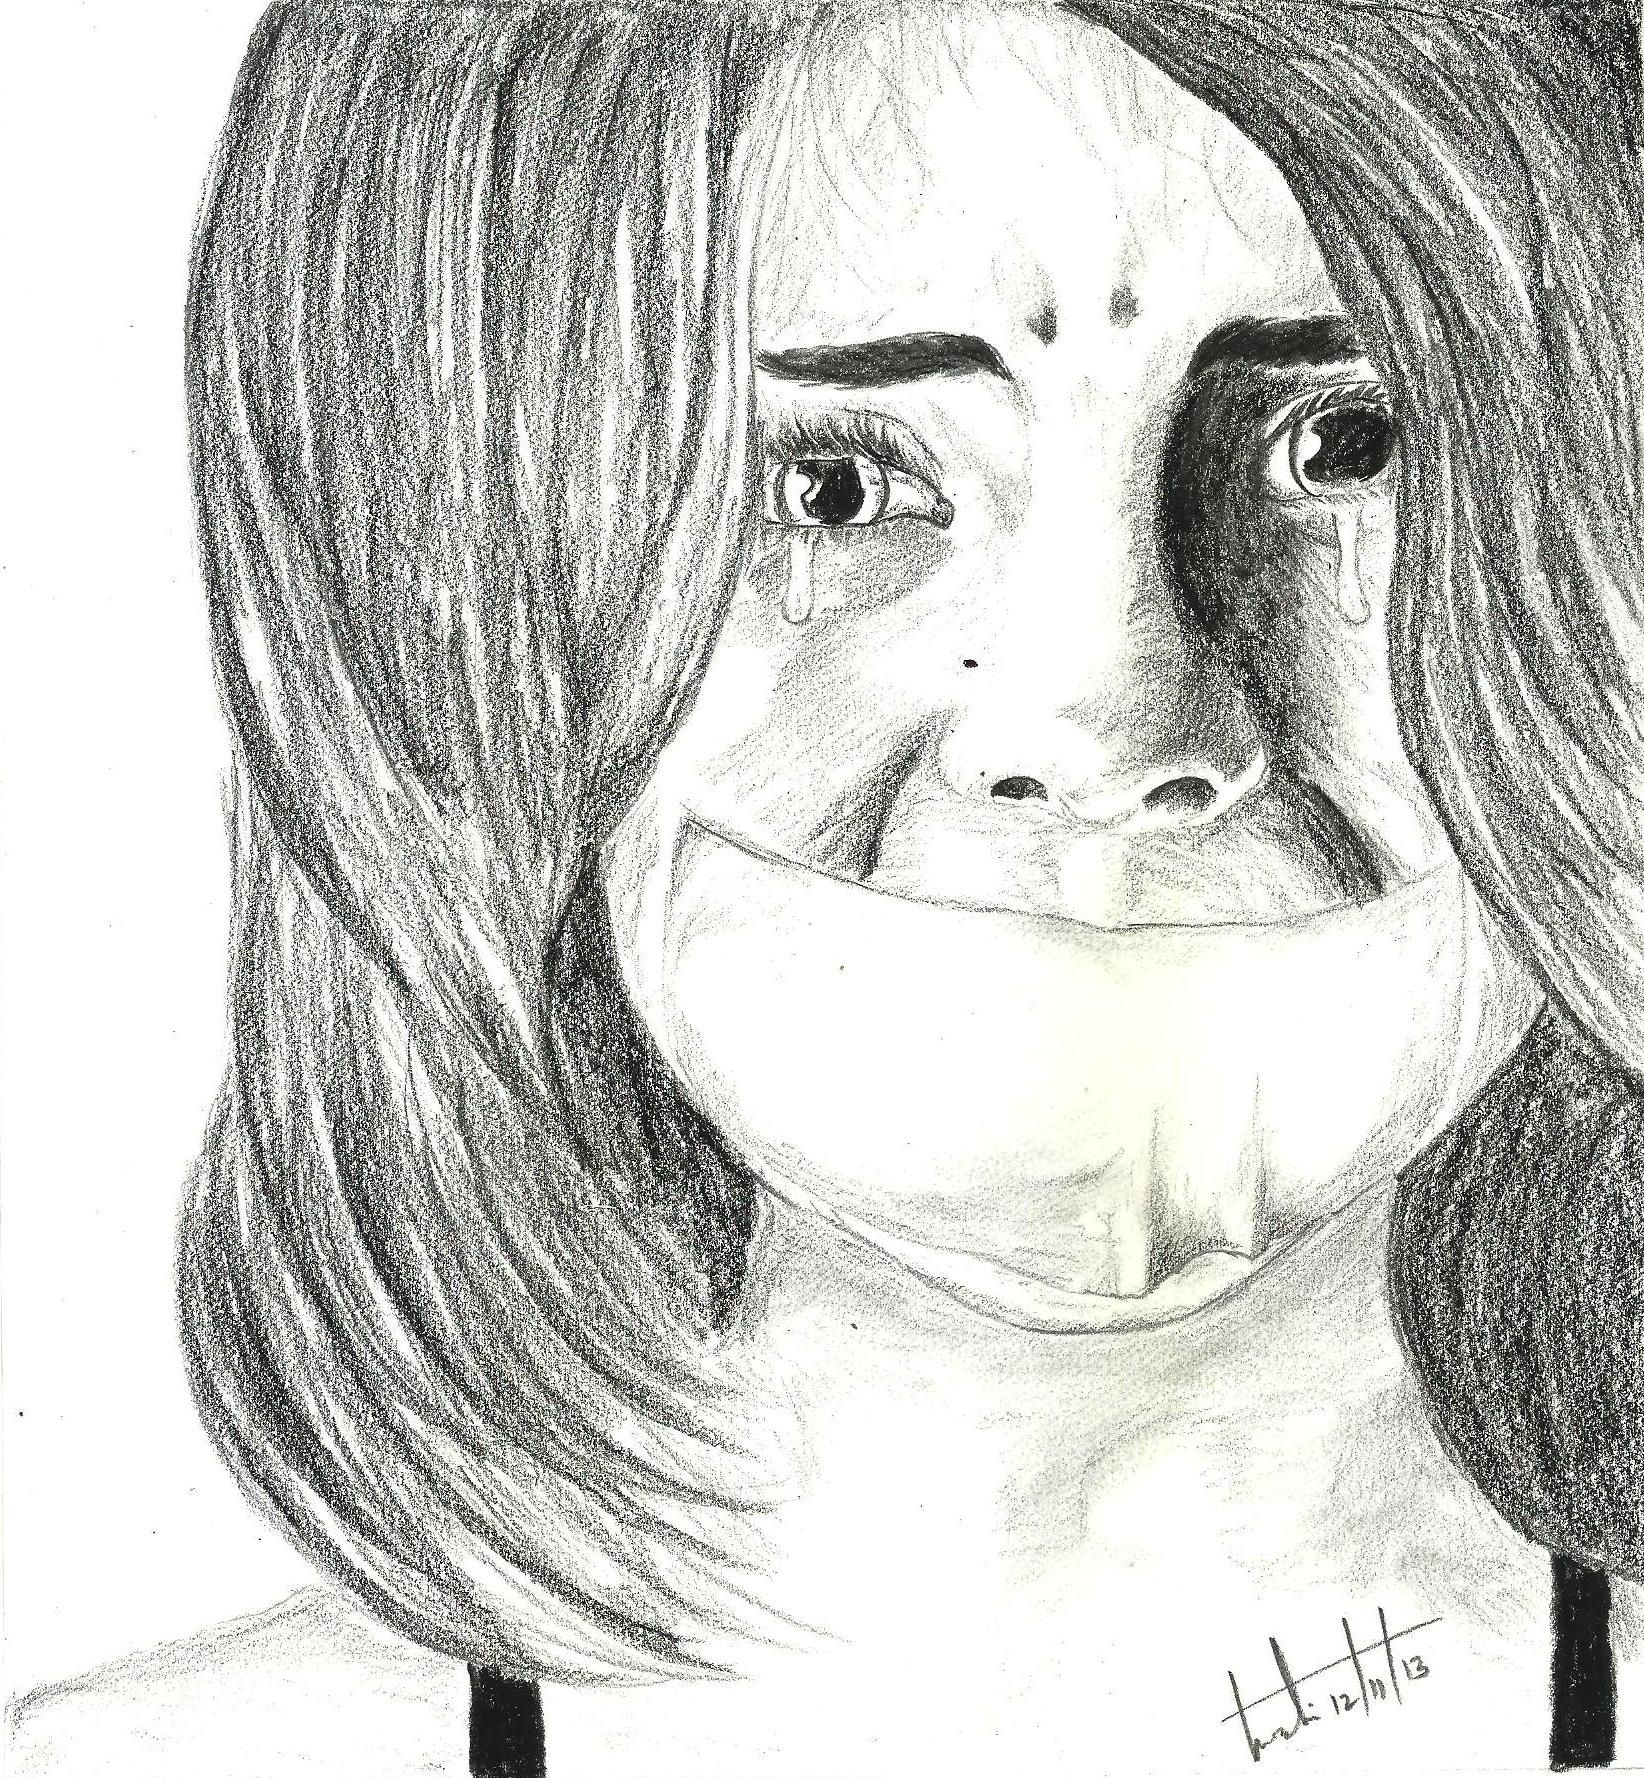 Stop child abuse pencil sketching pencil drawings domestic violence blame drawings in